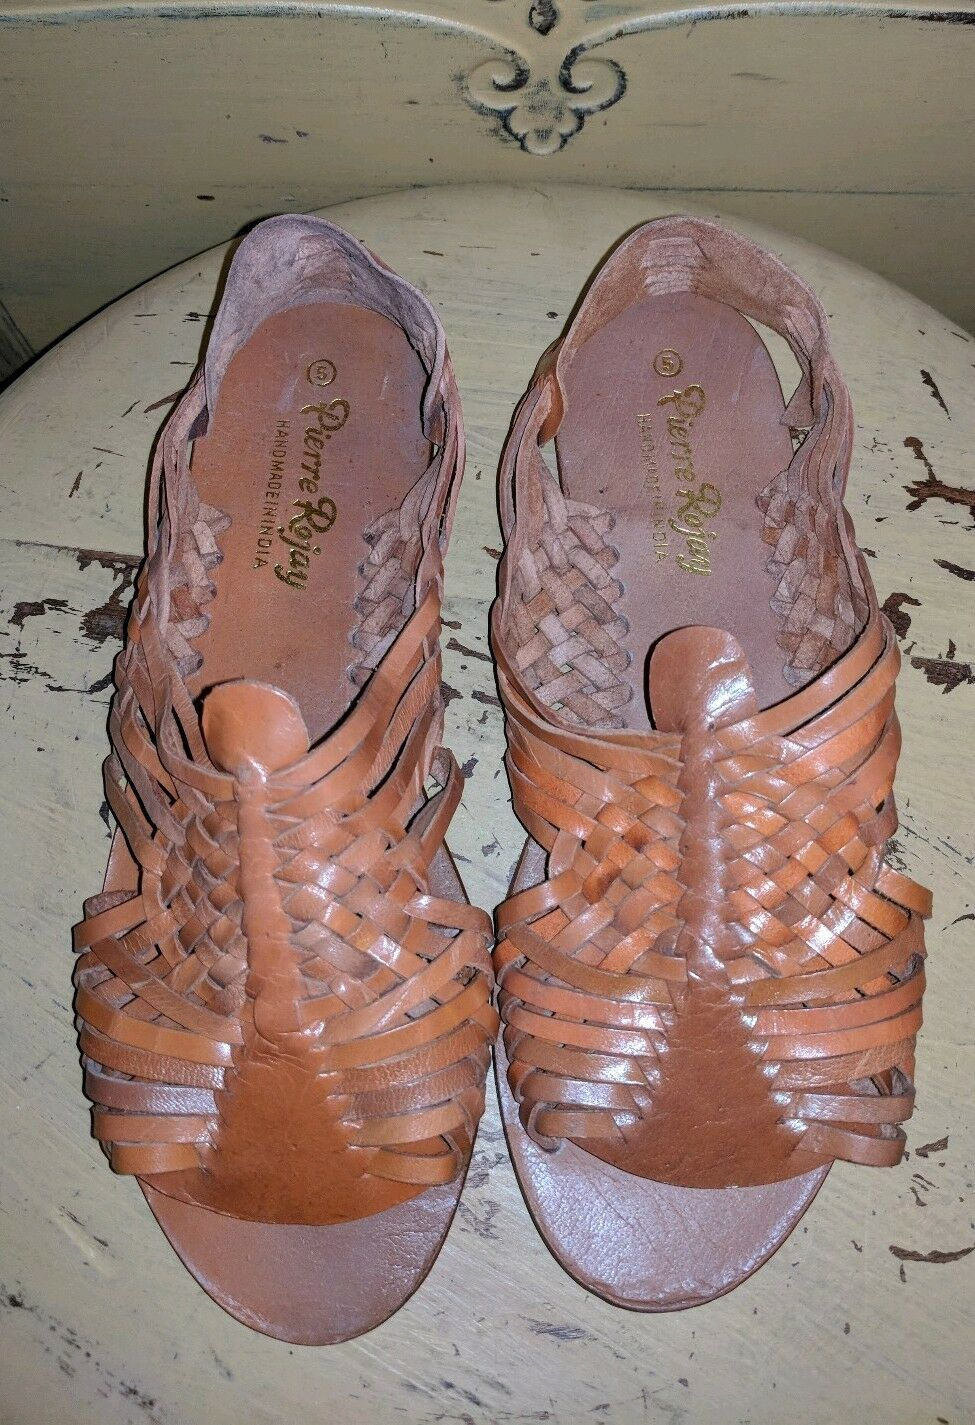 VINTAGE PIERRE ROJAY HANDMADE HANDMADE HANDMADE HUARACHE WOVEN LEATHER SANDALS LADIES BROWN 5 19d059